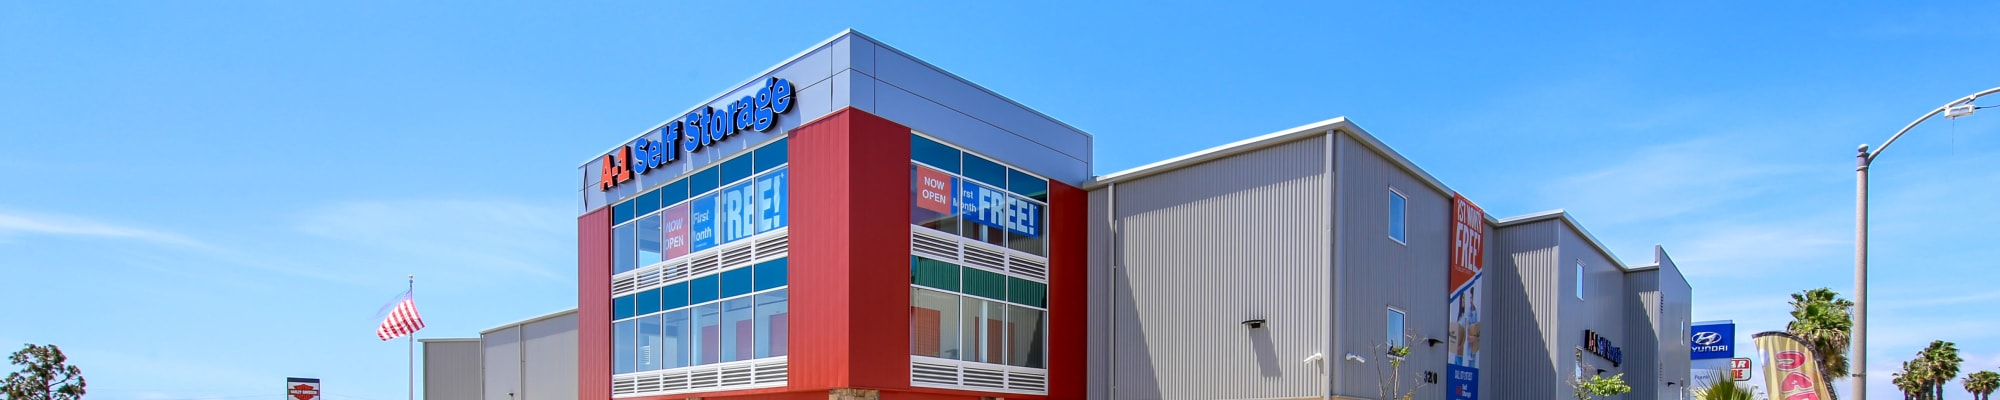 Student storage options at A-1 Self Storage in Cypress, California